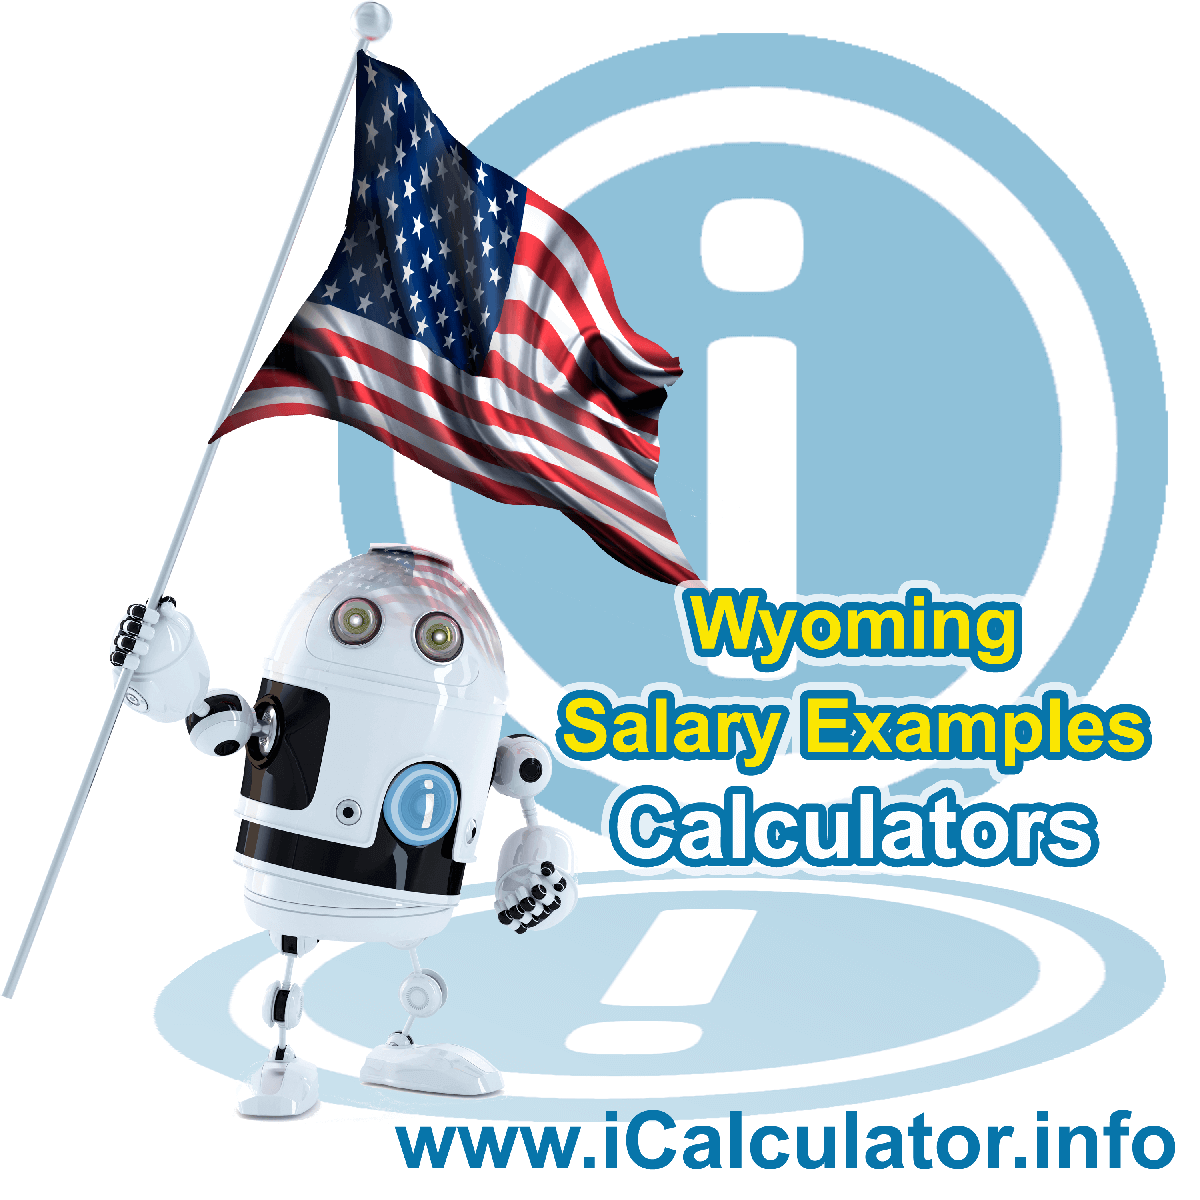 Wyoming Salary Example for $20.00 in 2020 | iCalculator | $20.00 salary example for employee and employer paying Wyoming State tincome taxes. Detailed salary after tax calculation including Wyoming State Tax, Federal State Tax, Medicare Deductions, Social Security, Capital Gains and other income tax and salary deductions complete with supporting Wyoming state tax tables